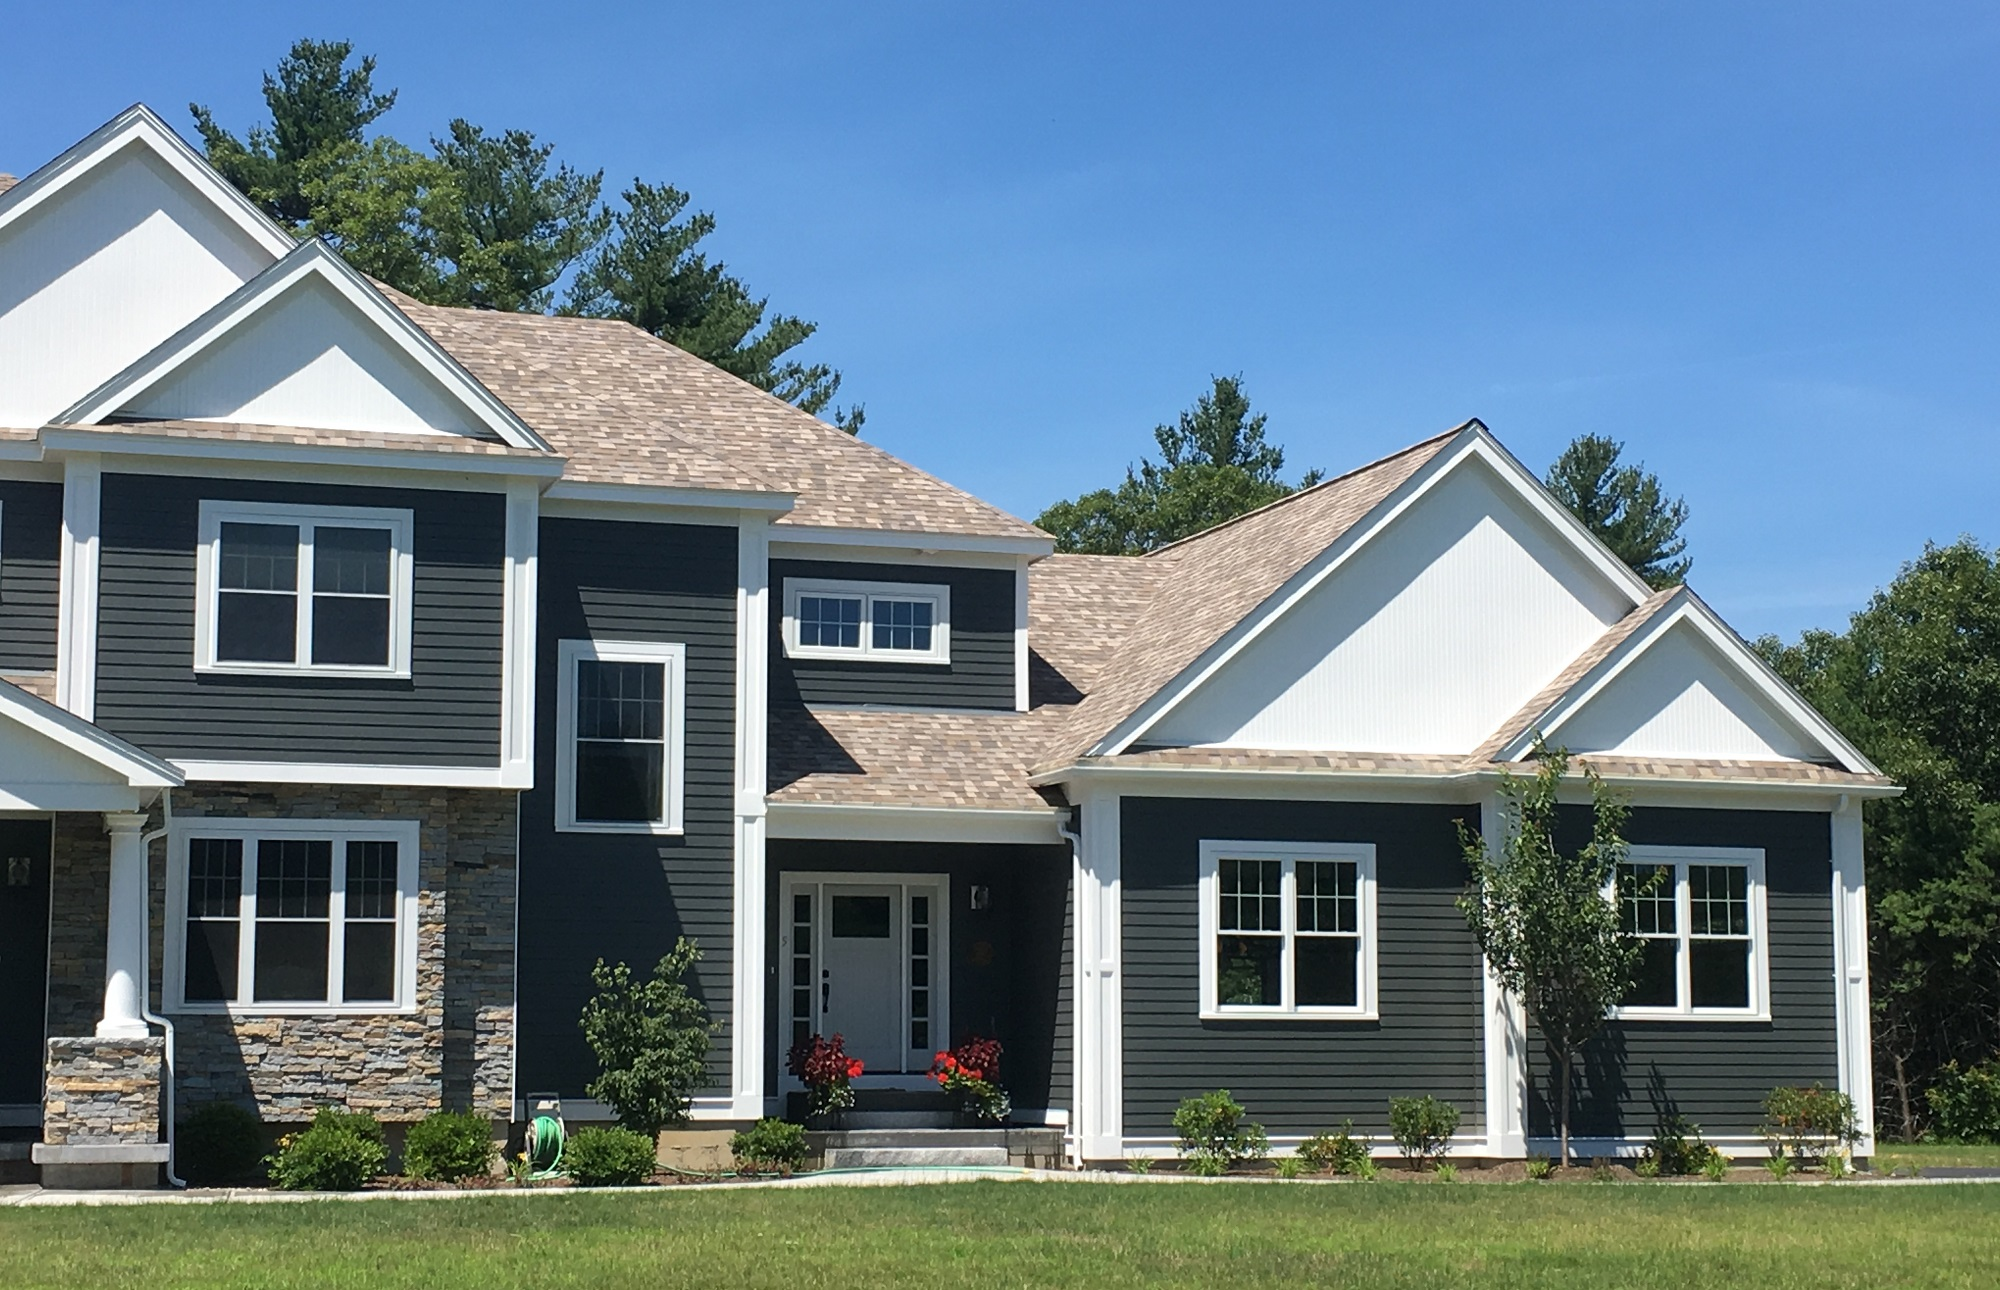 Beautiful Home with new siding and new roof